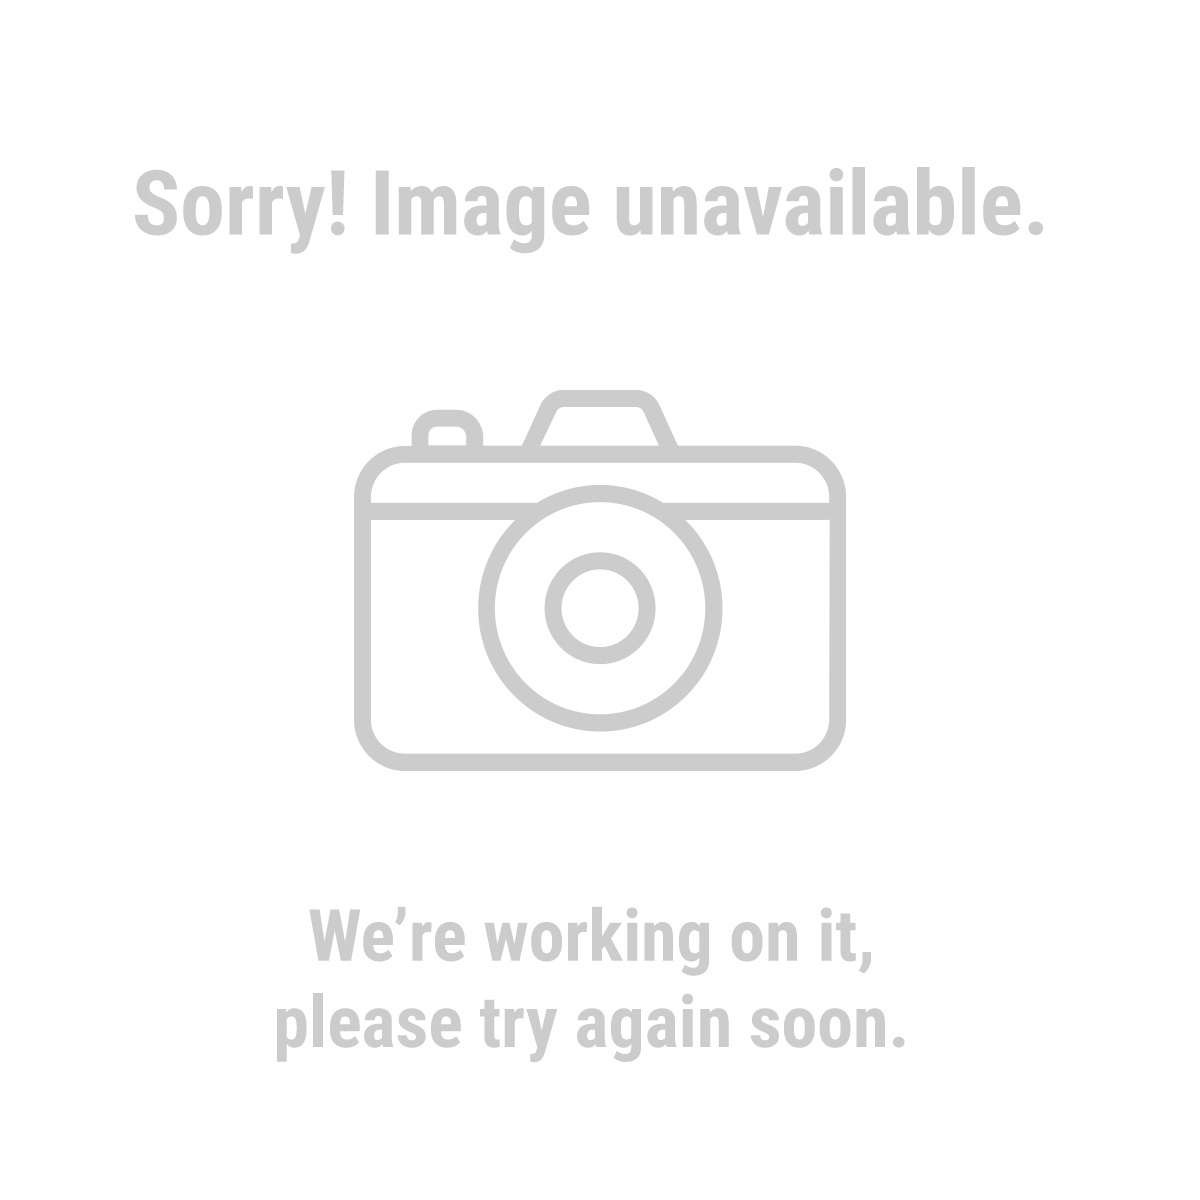 Pittsburgh® Automotive 60278 12 Ft. 8 Gauge Jumper Cables with Inline Battery Tester